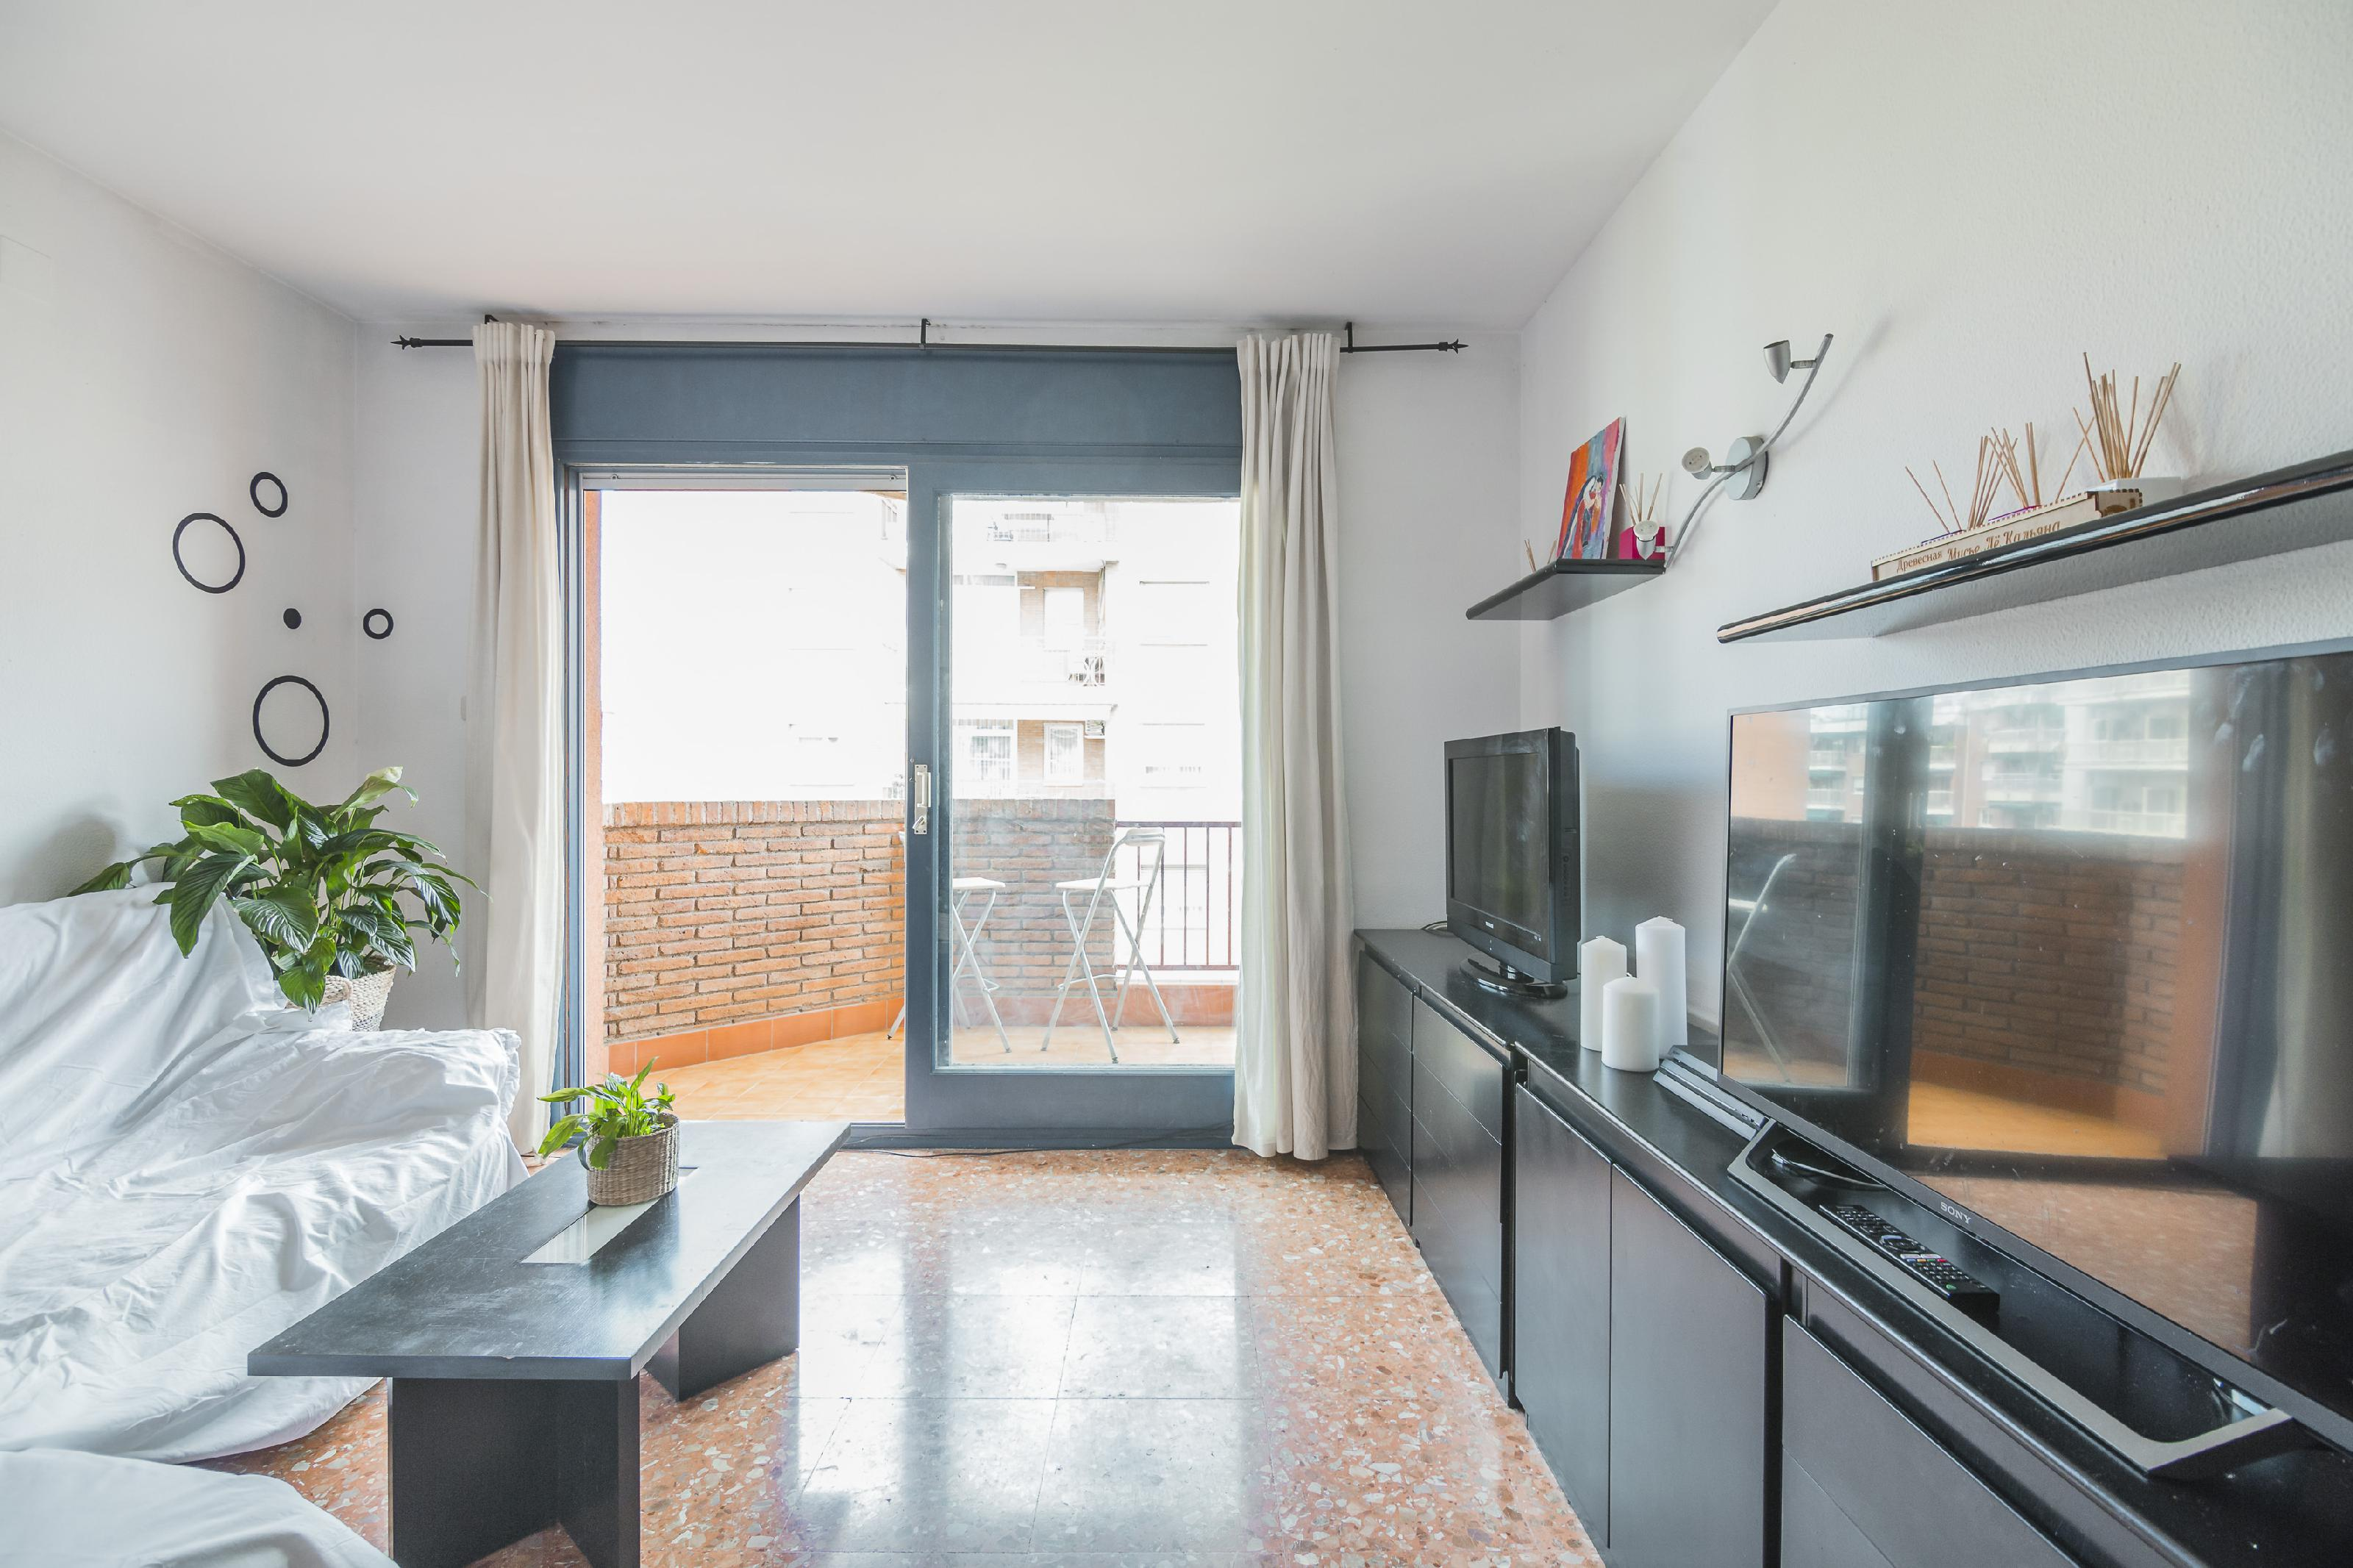 239426 Flat for sale in Les Corts, Les Corts 10